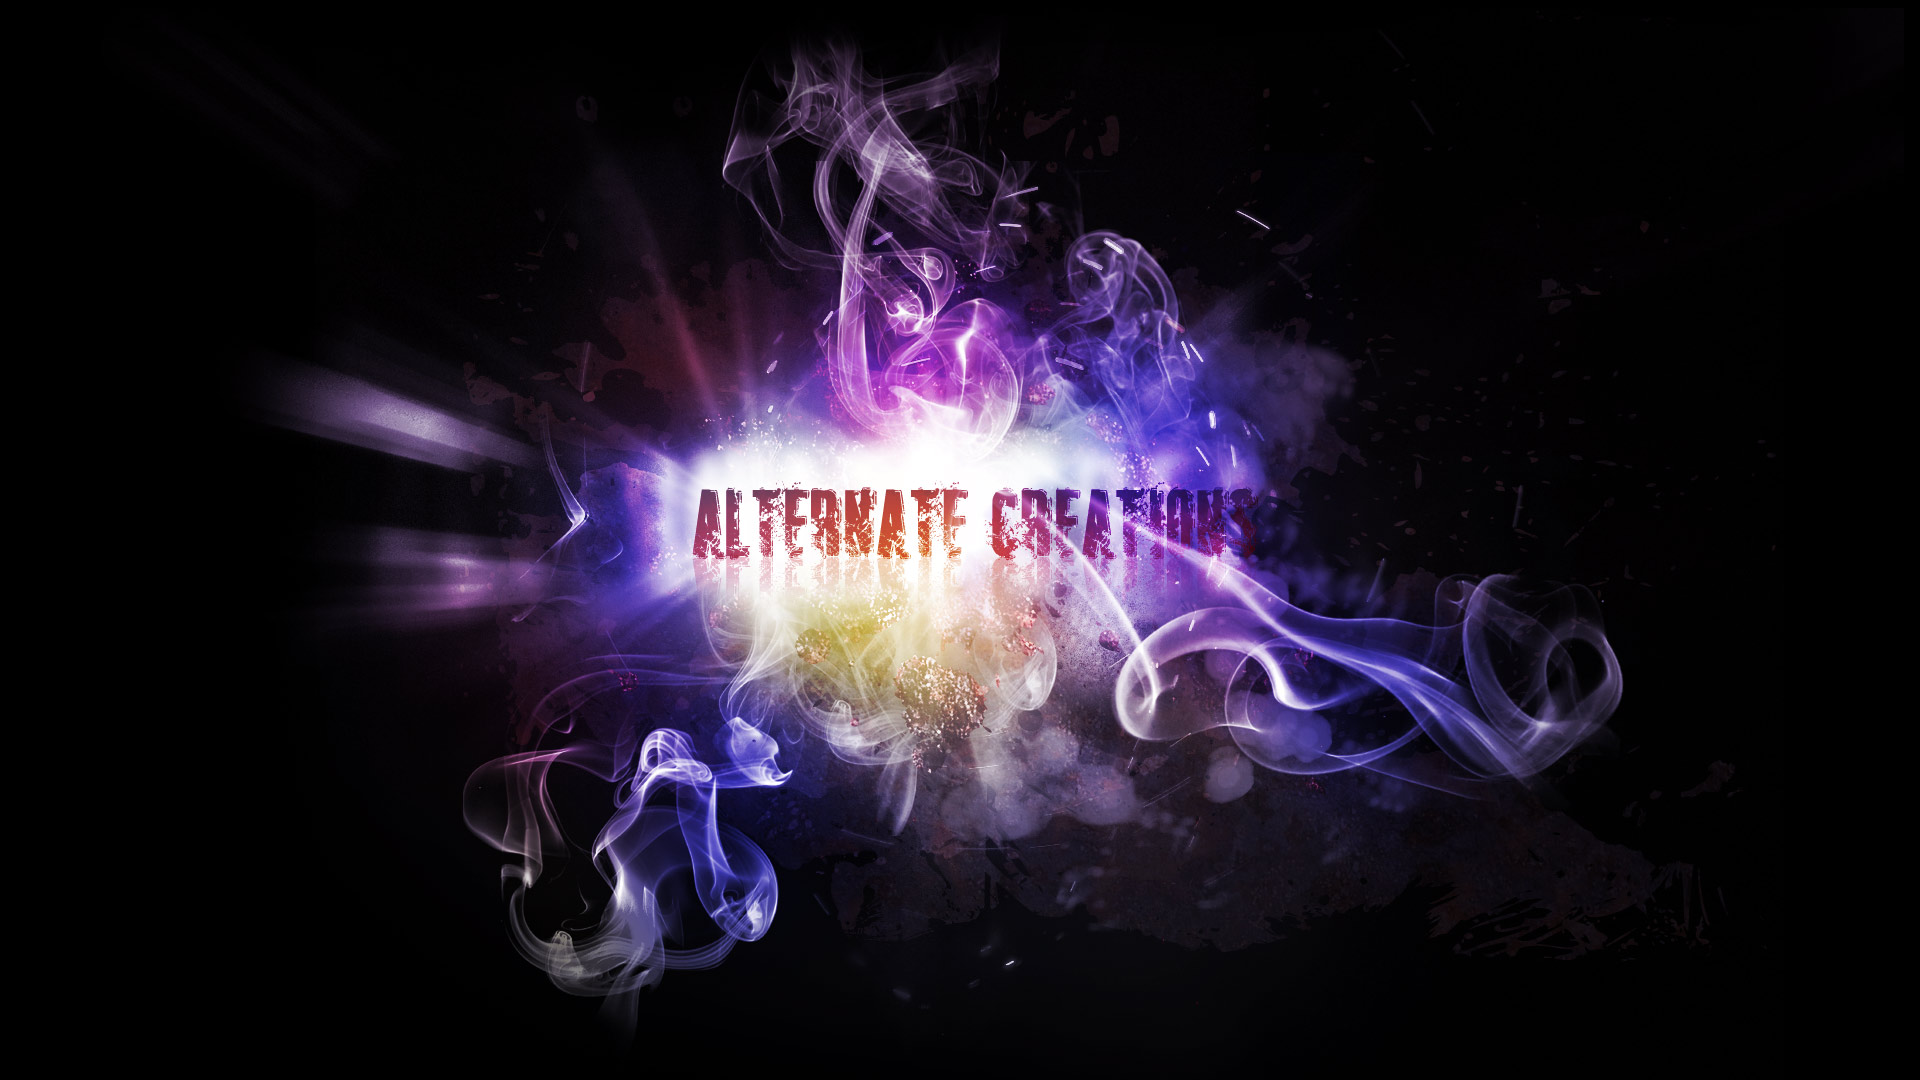 Alternate Creations Graphics For The Web And Digital Media By Mark